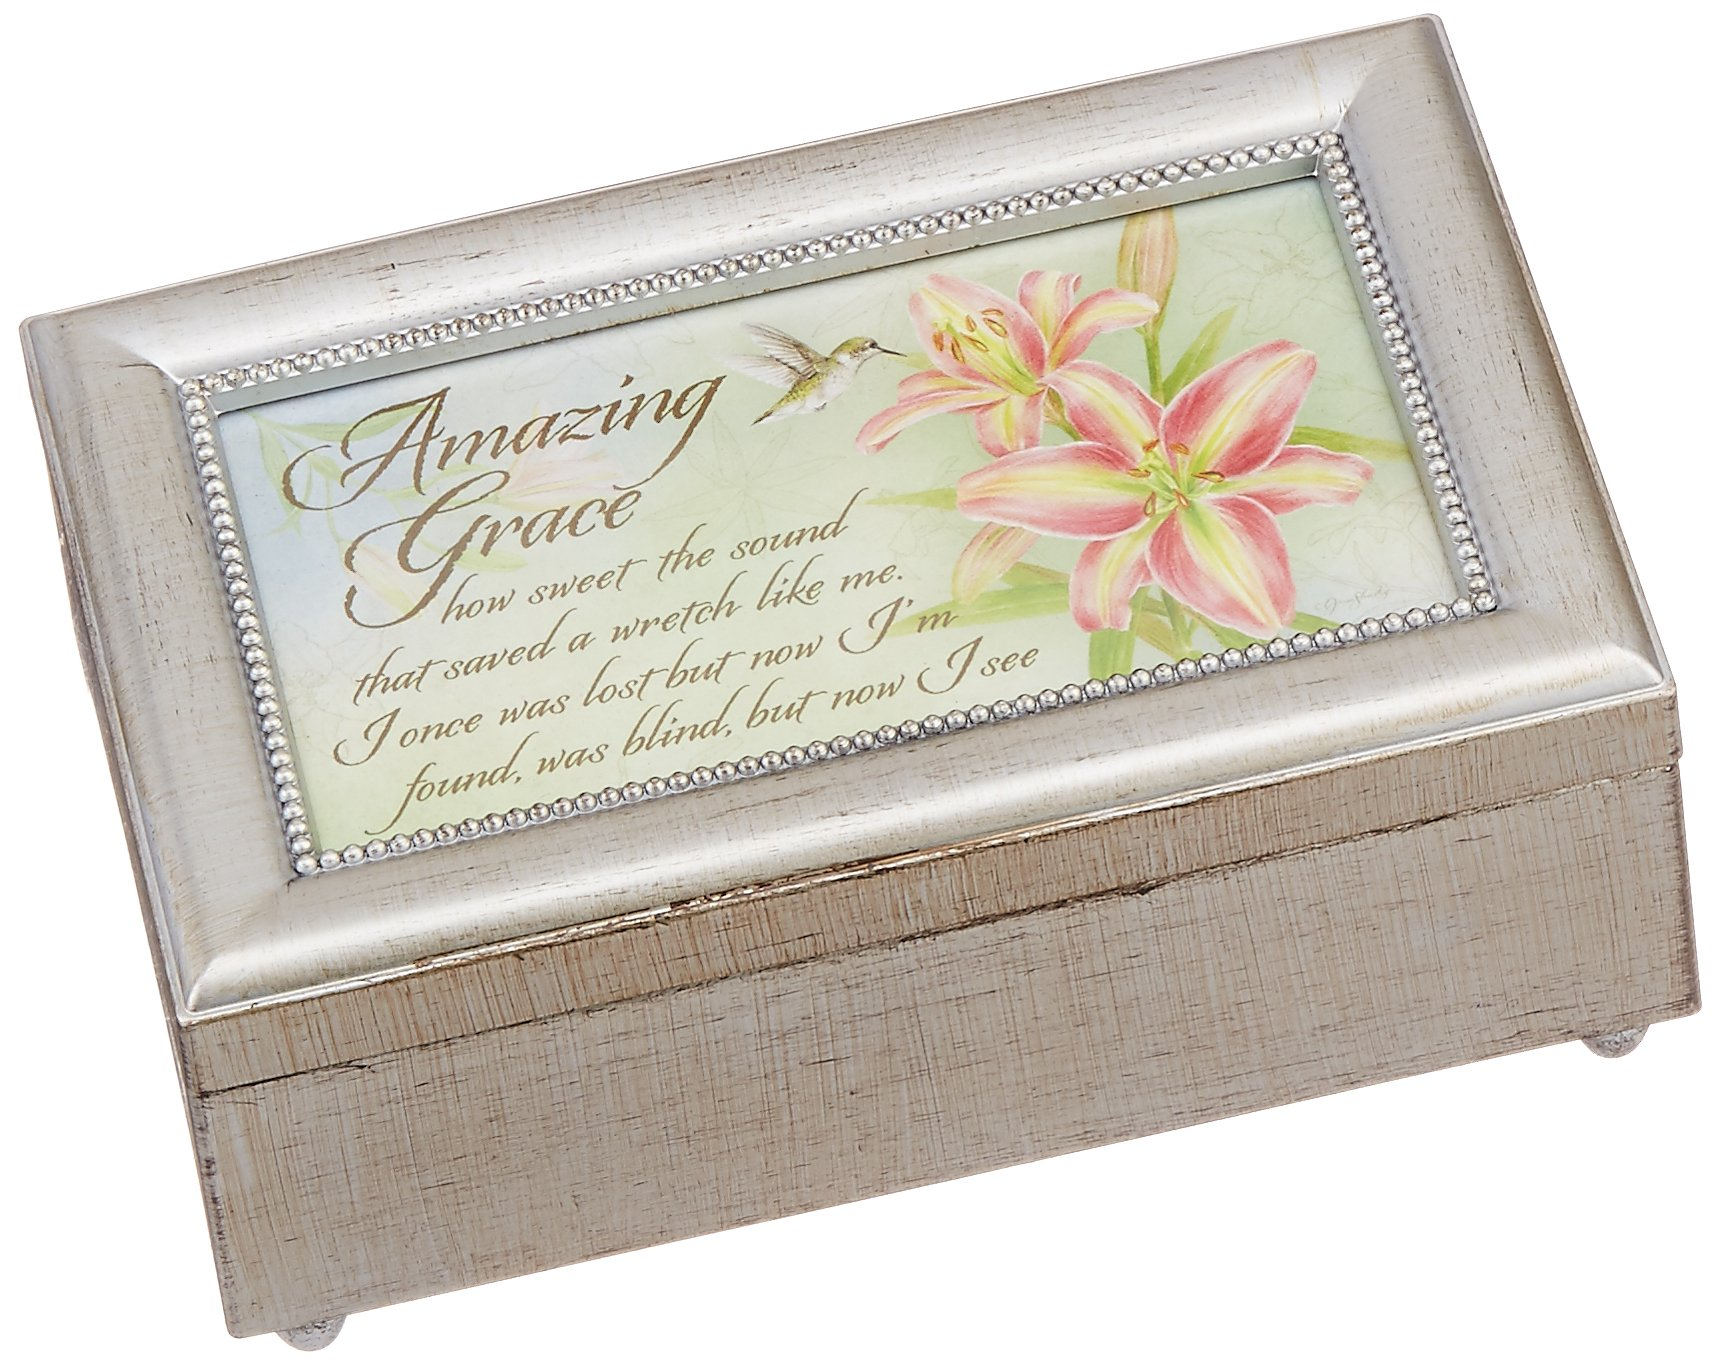 Carson Home Accents 18289 Amazing Grace Jane Shaky Music Box, 6-Inch by 4-Inch by 2-1/2-Inch by Carson